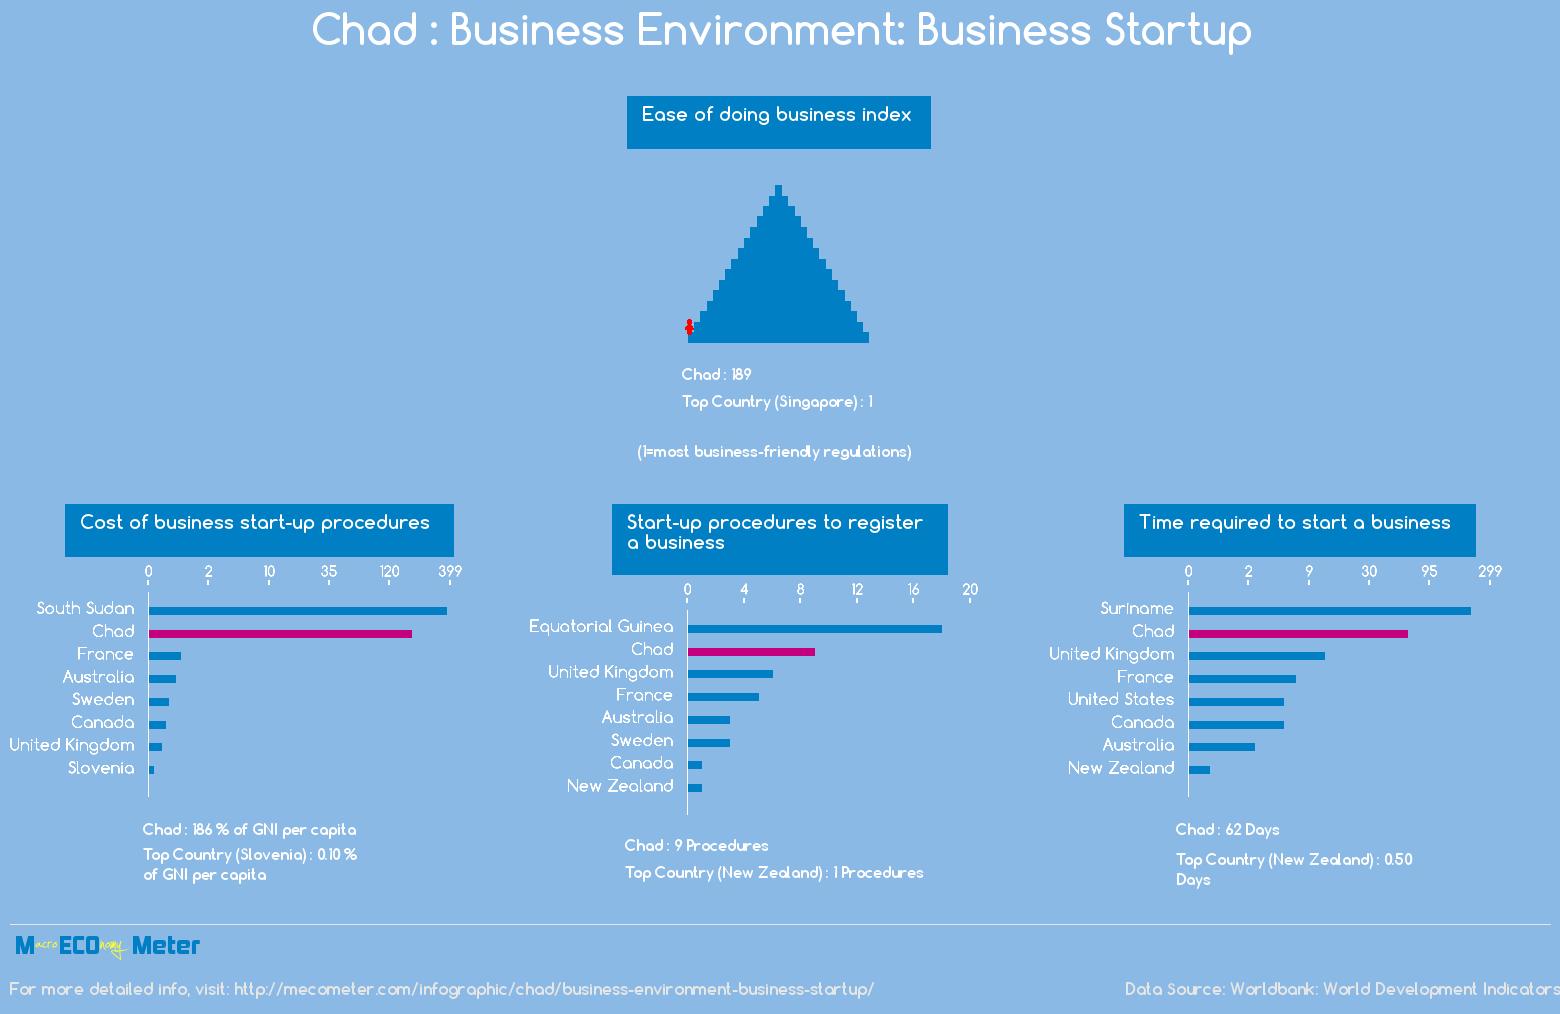 Chad : Business Environment: Business Startup